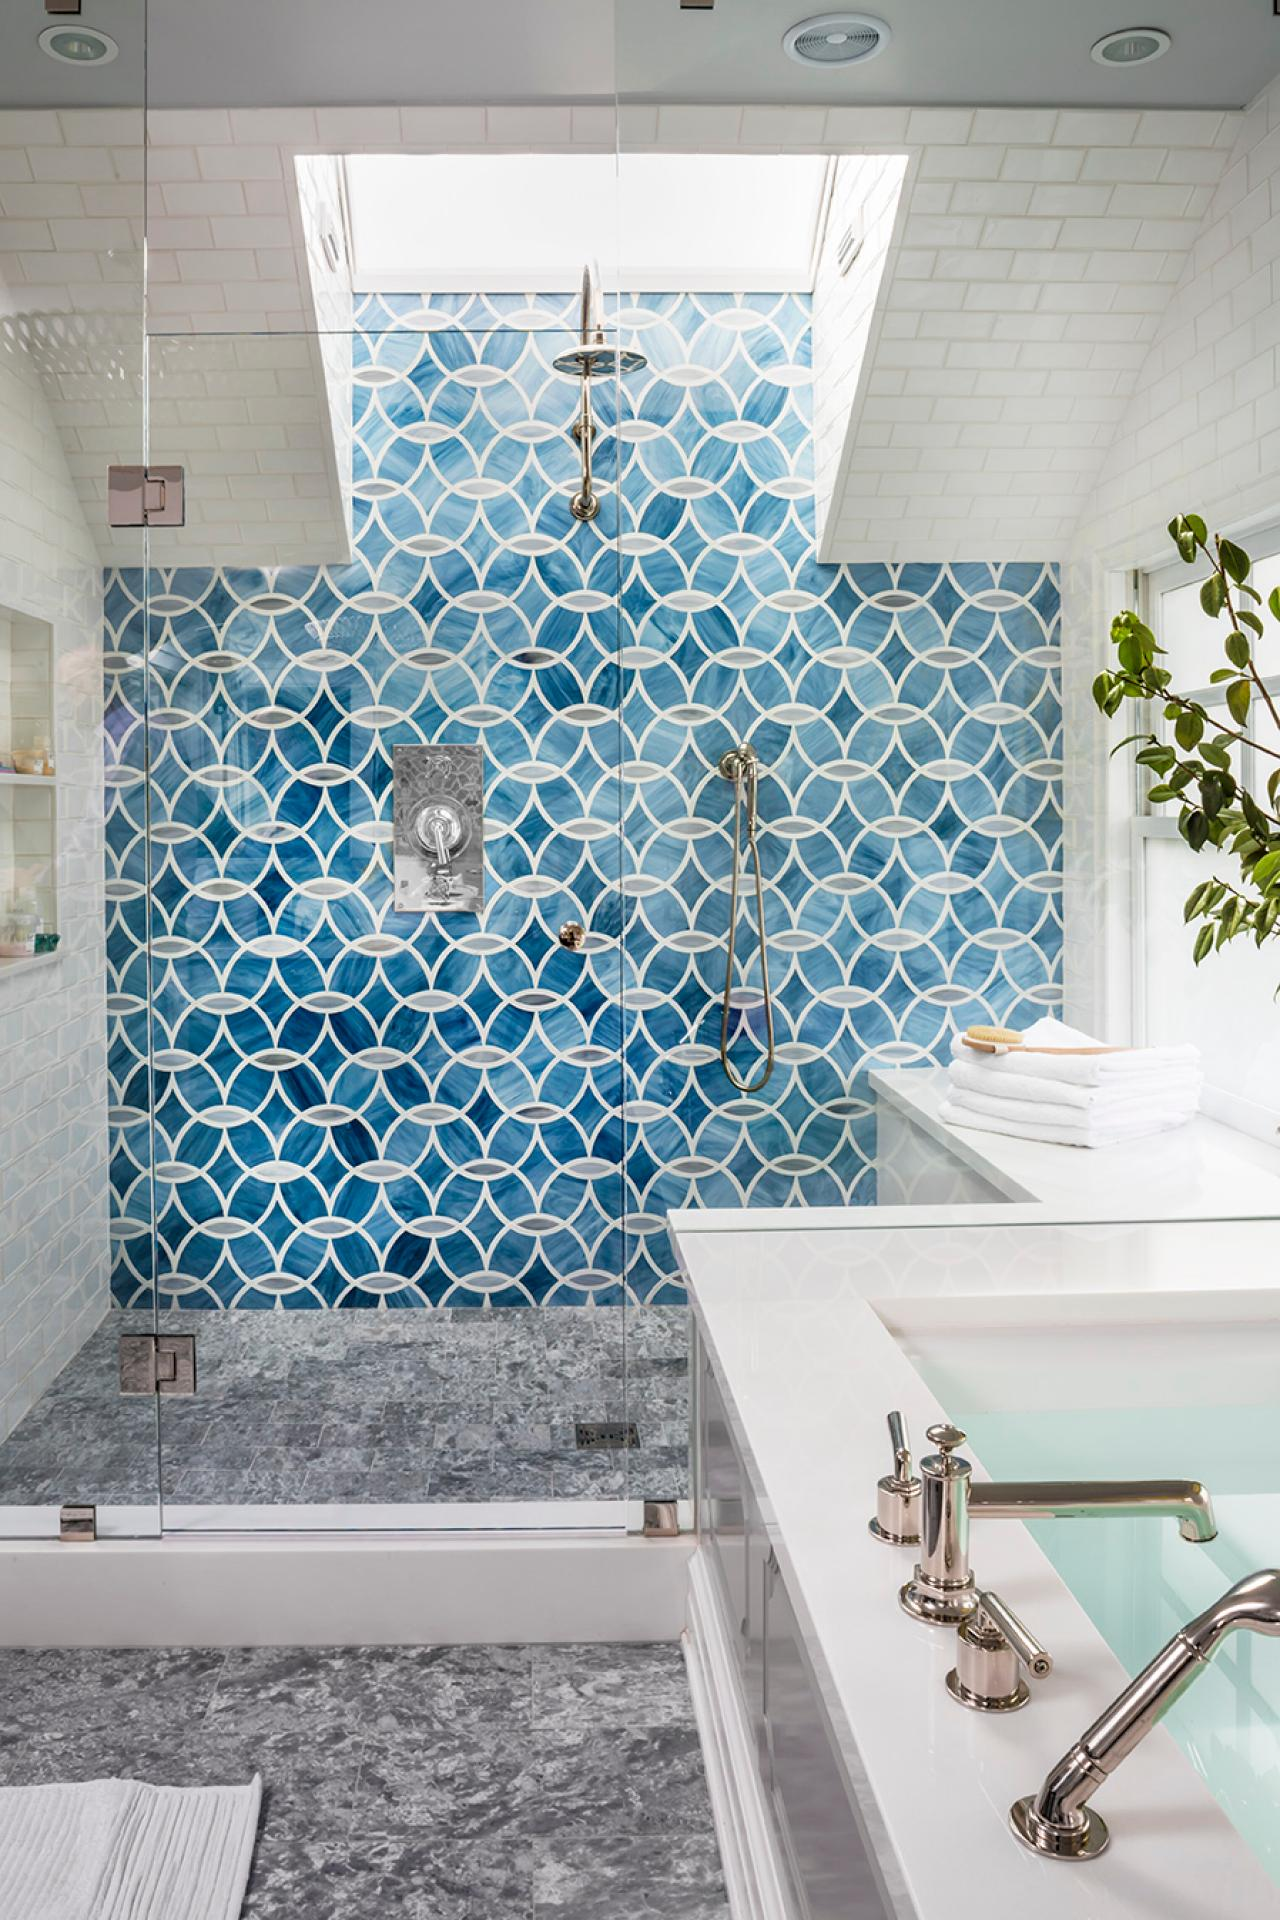 Top 20 Bathroom Tile Trends Of 2017 Hgtv 39 S Decorating Design Blog Hgtv